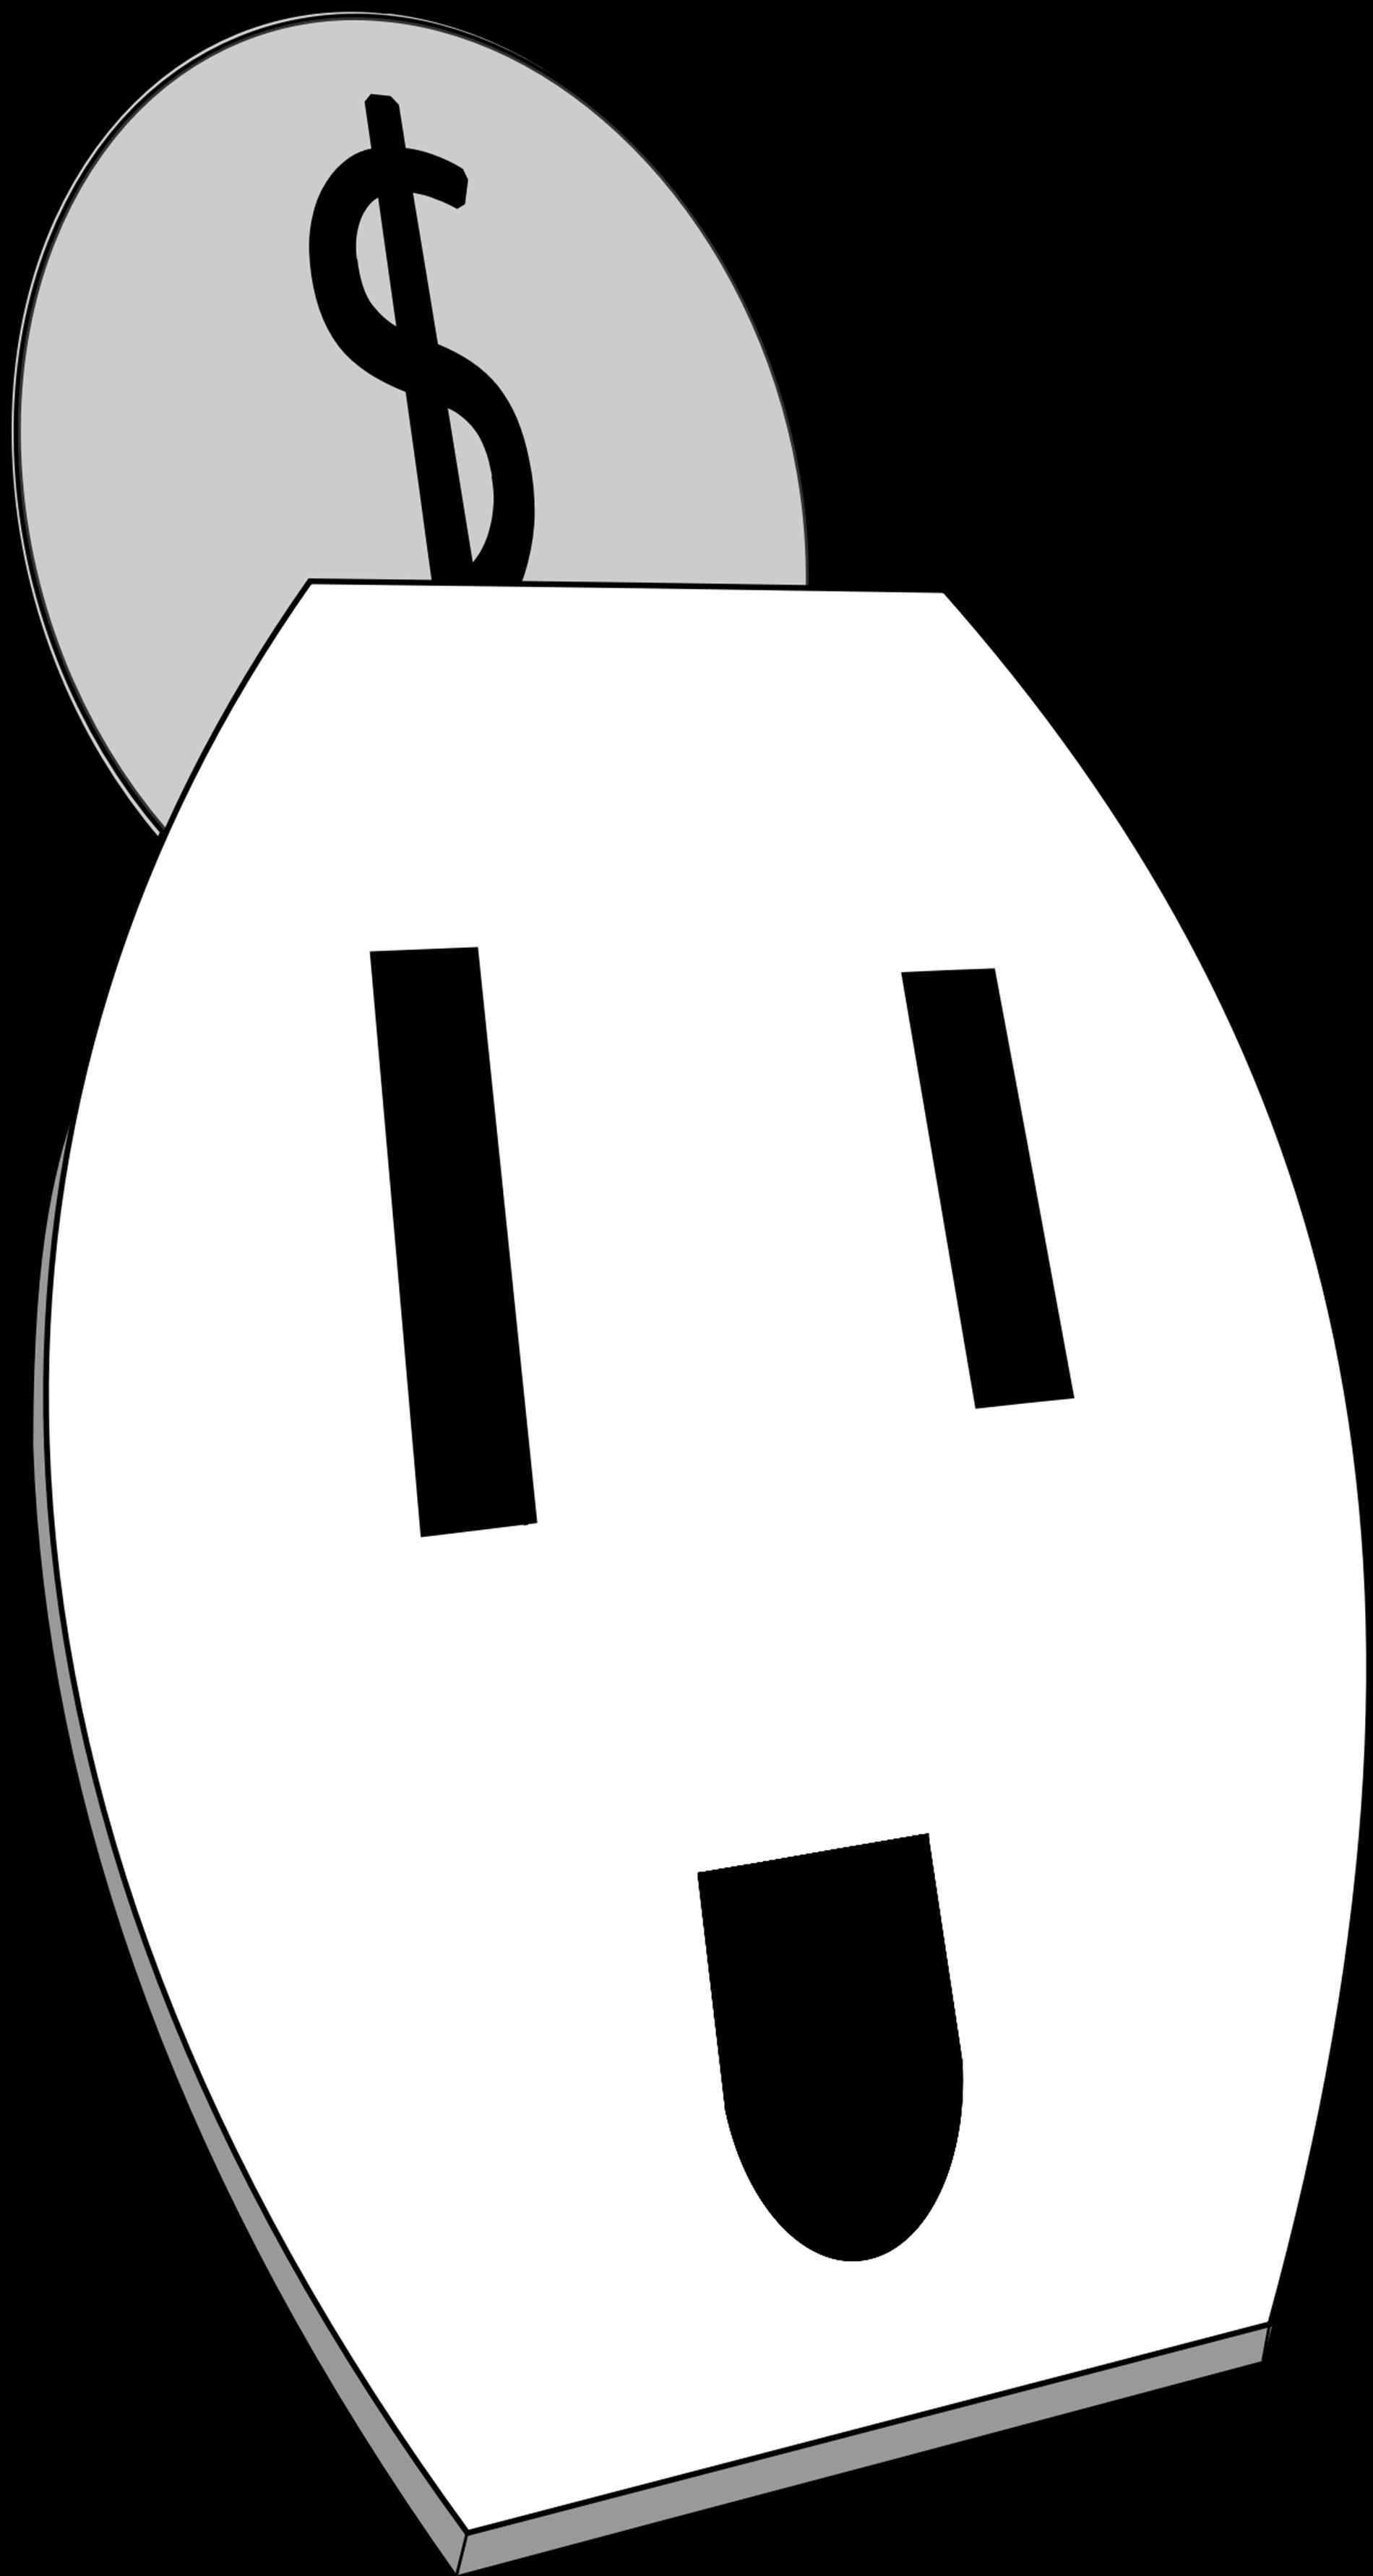 Electrical clipart electrical system. Electricity black and white